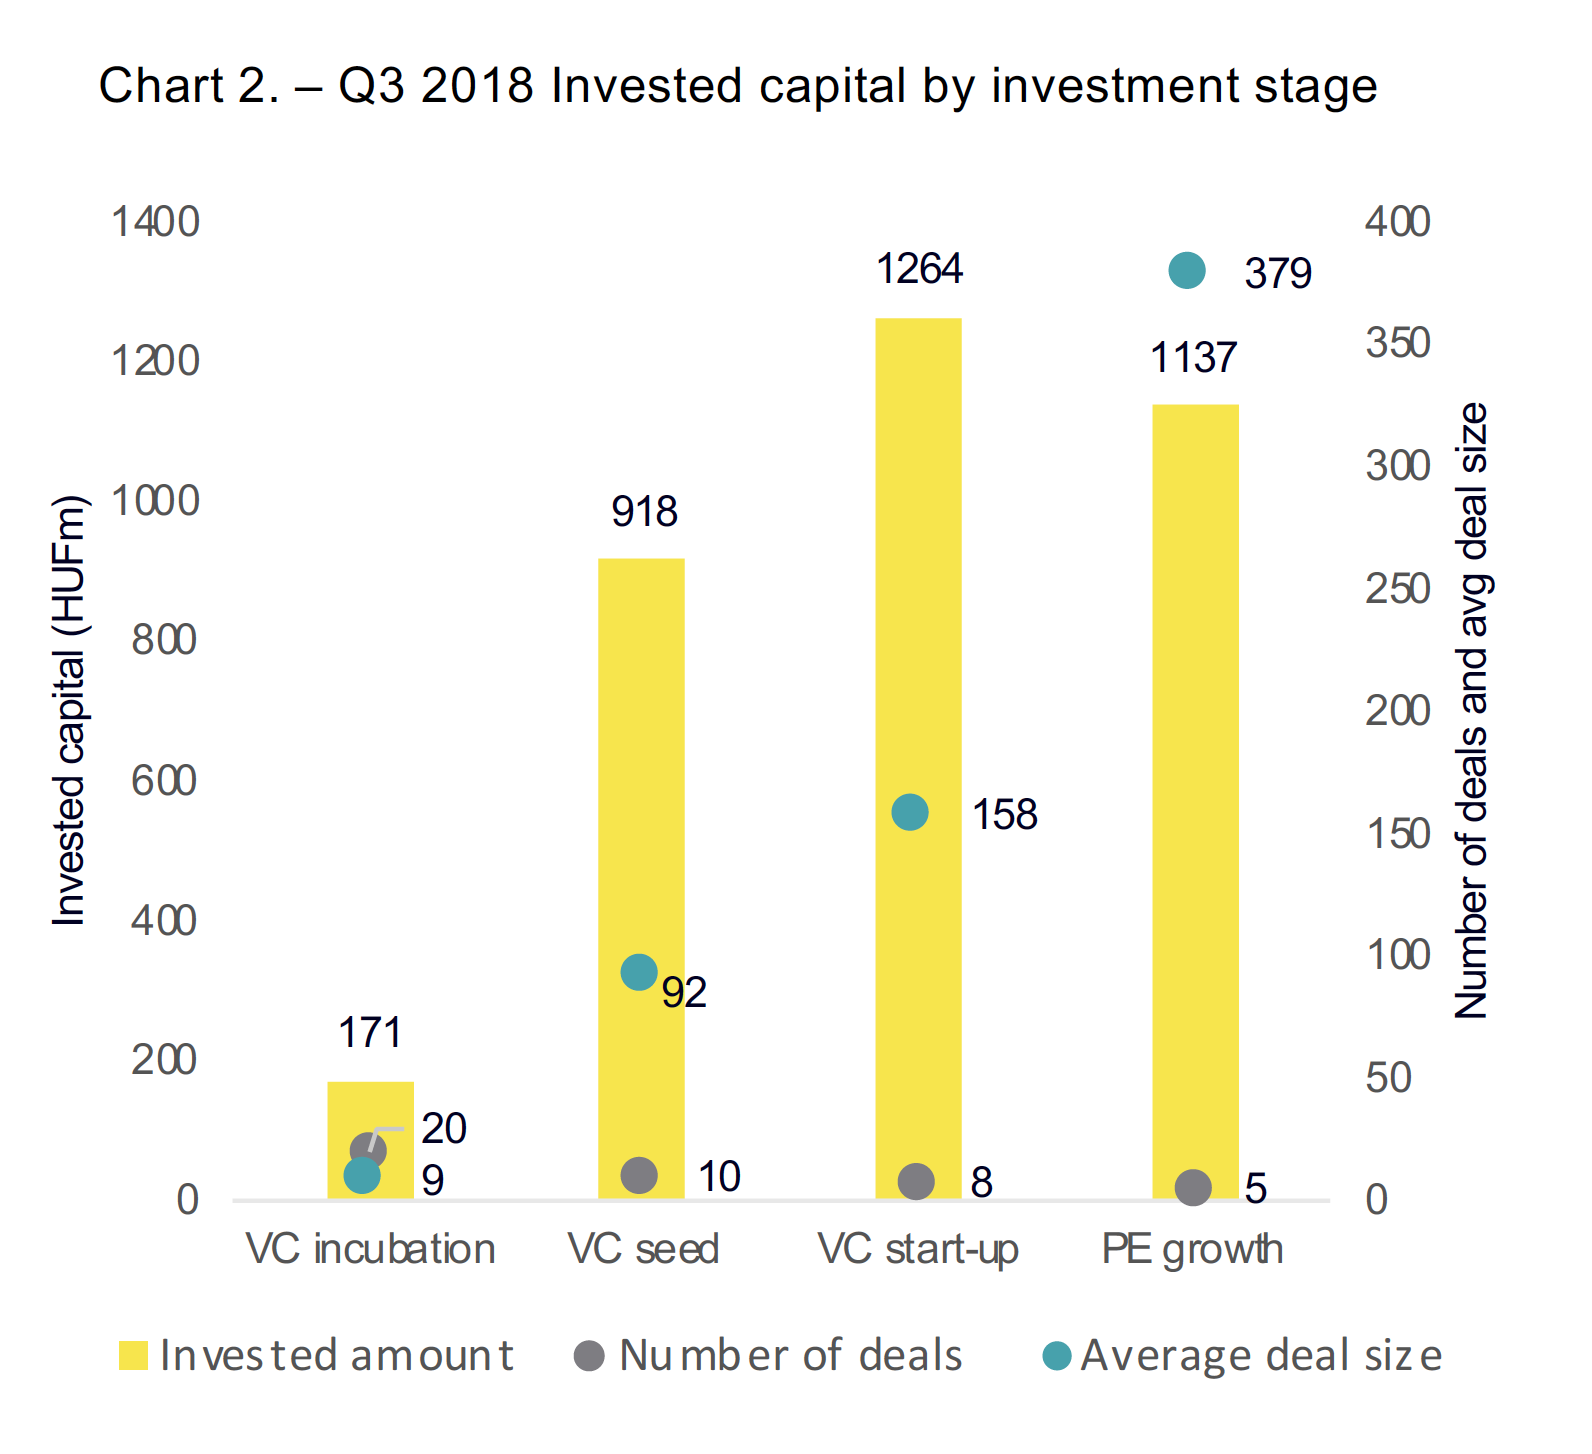 Chart 2. – Q3 2018 Invested capital by investment stage